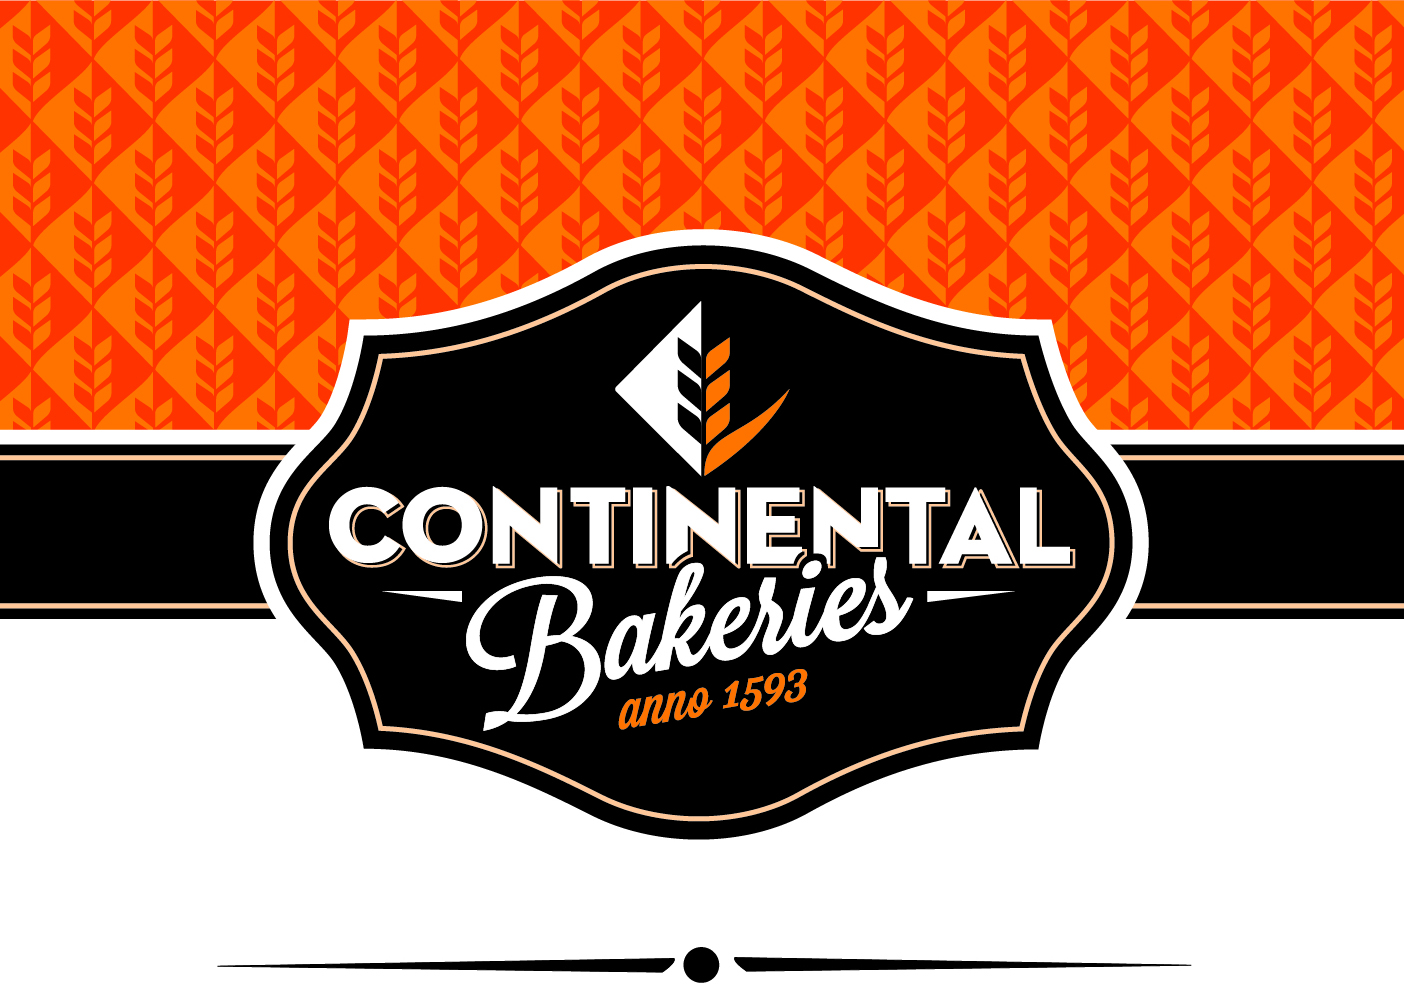 Continental Bakeries North Europe A